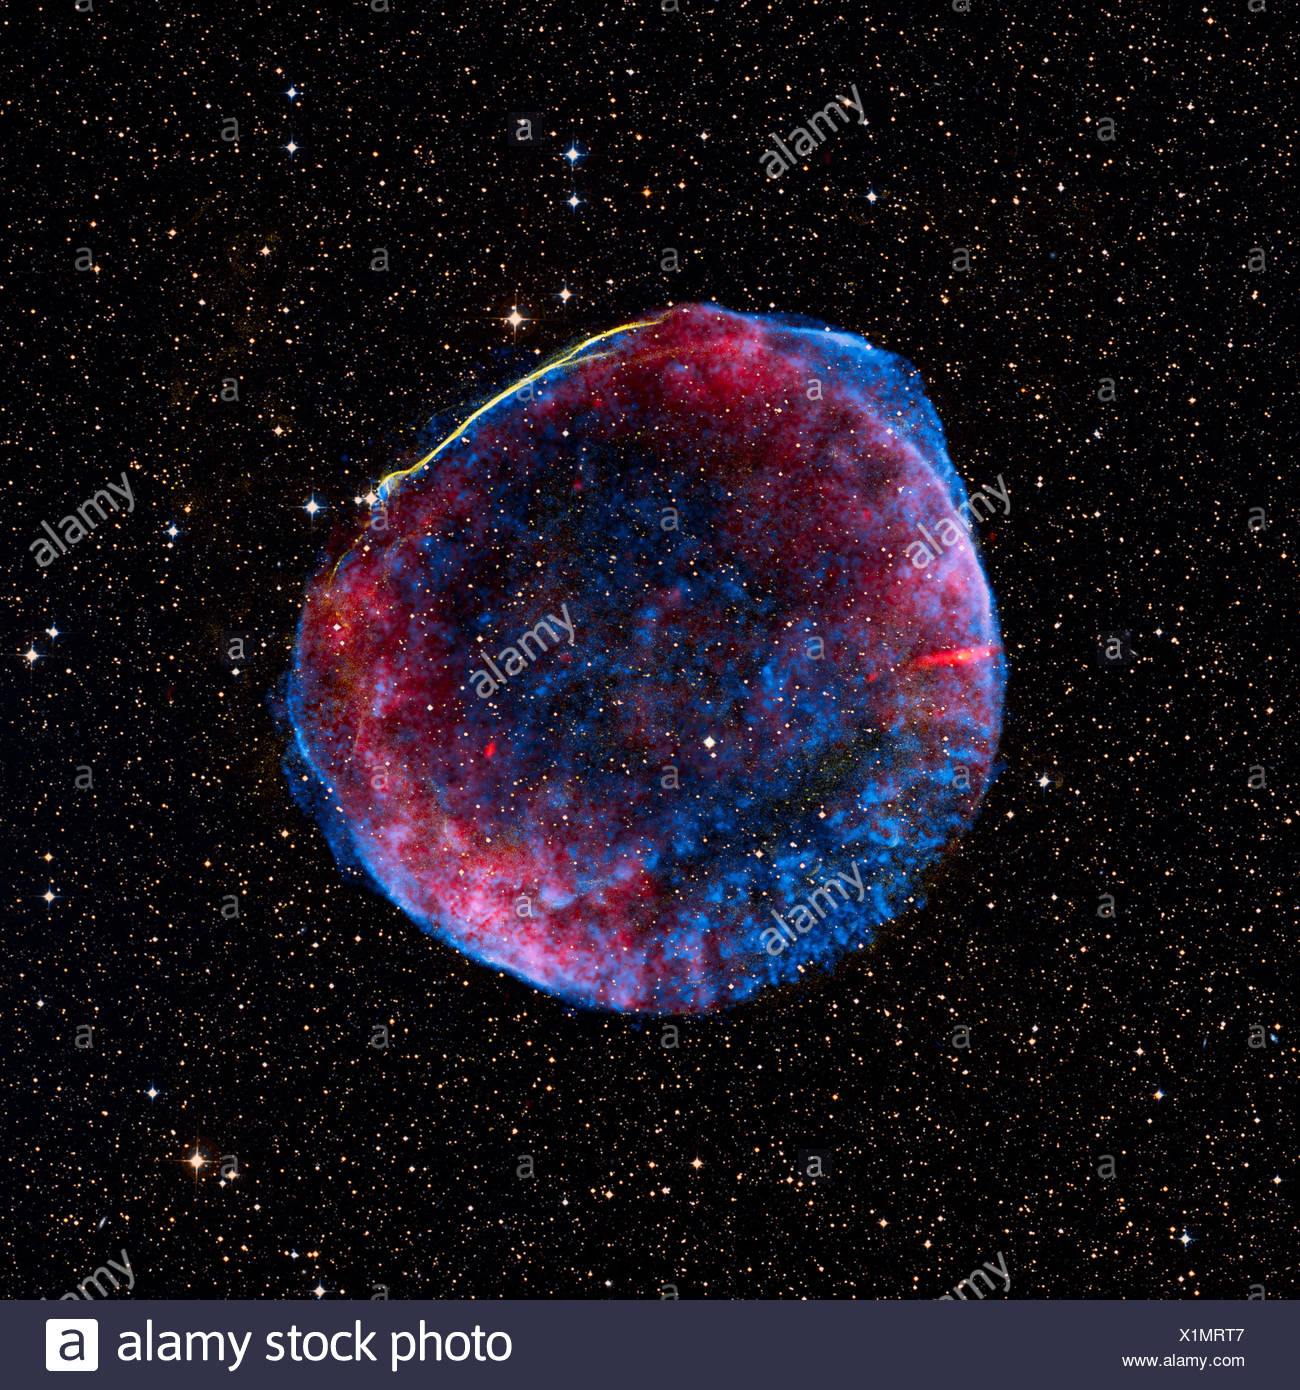 A composite image of the SN 1006 supernova remnant, which is located about  7000 light years from Earth